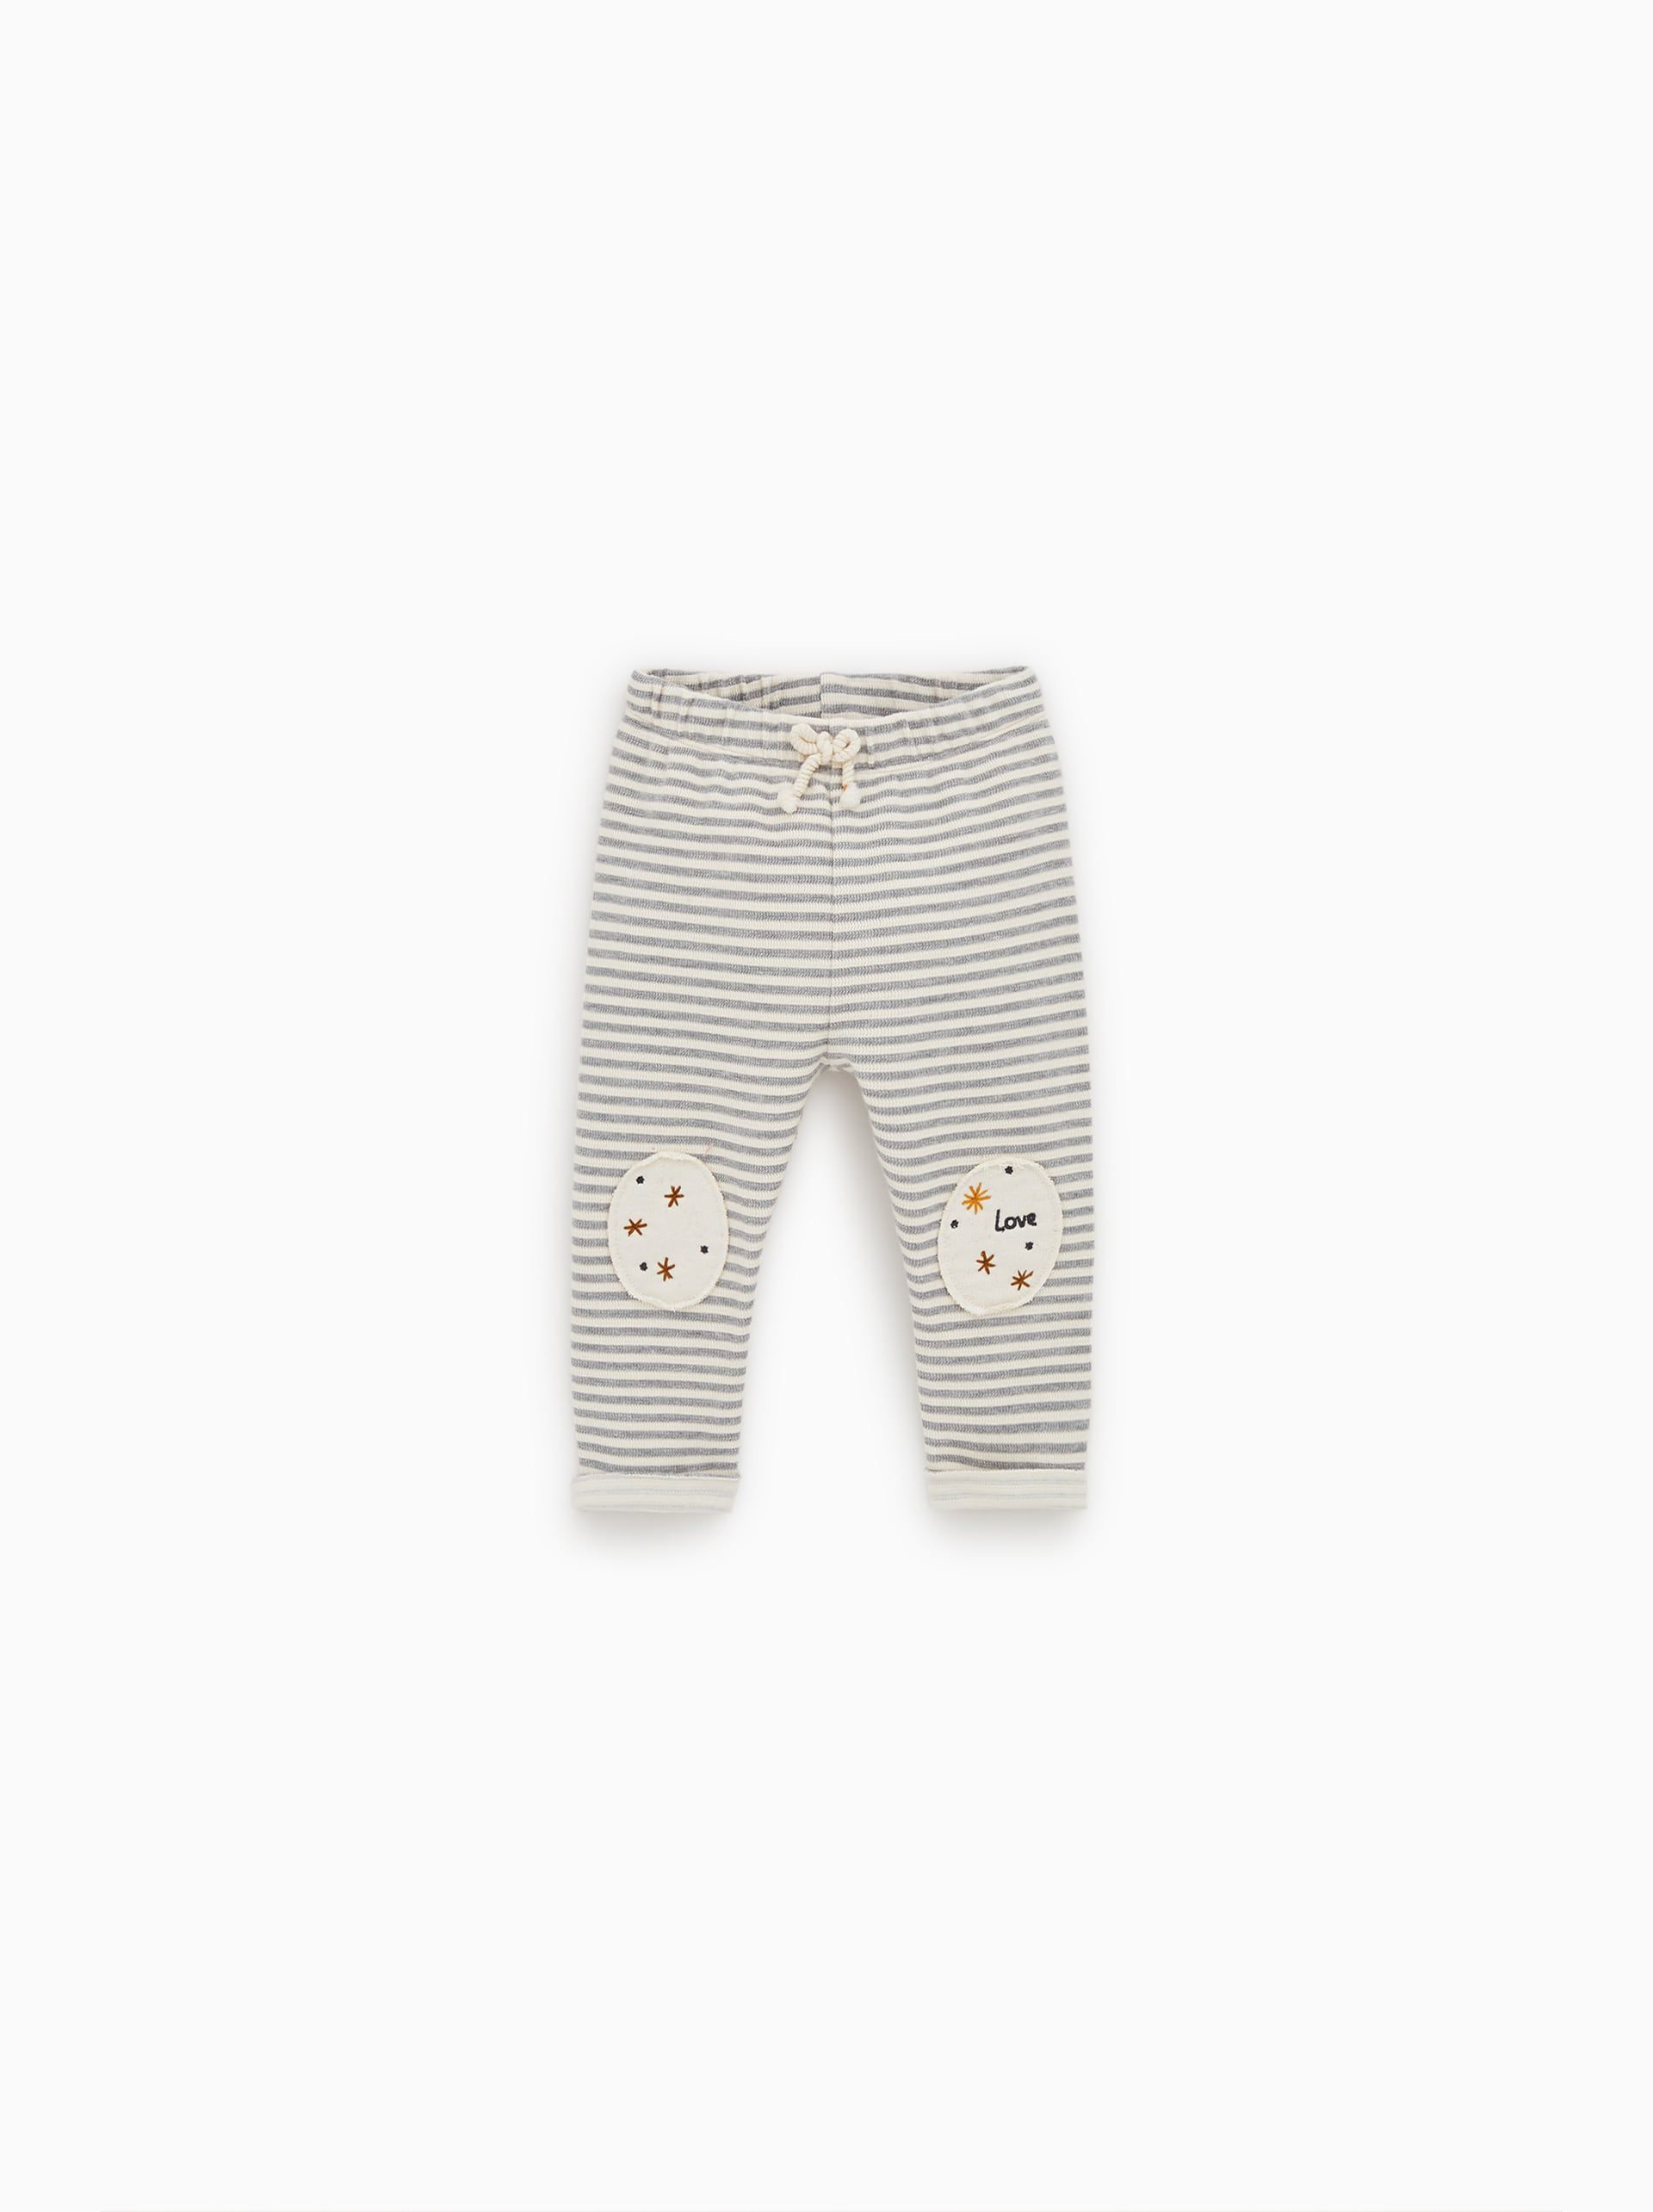 2bf3016c PANTS WITH KNEE PATCHES - PANTS AND OVERALLS-MINI | 0-12 mth-KIDS | ZARA  Canada